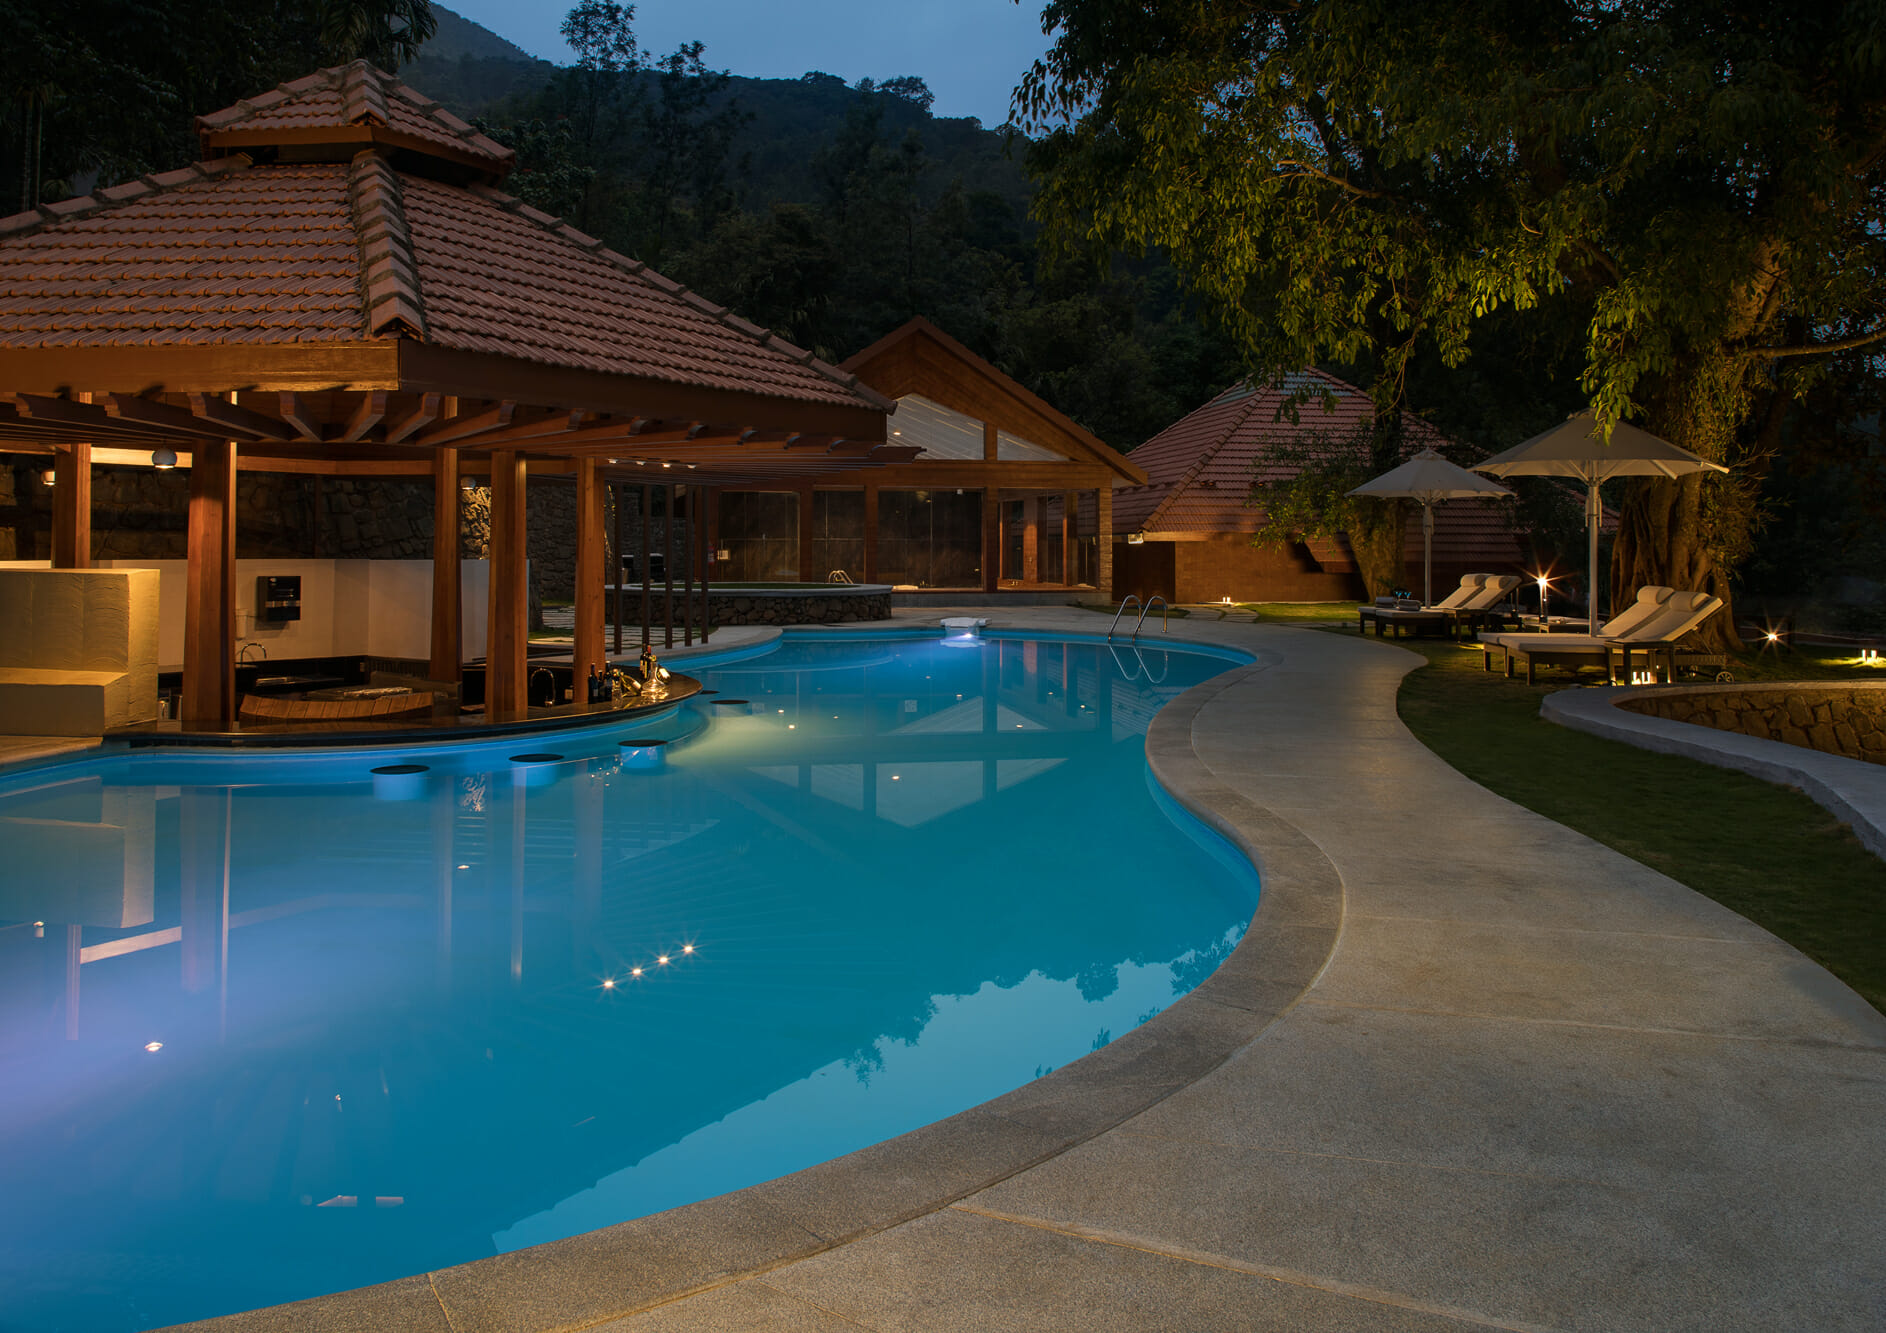 Swimming-pool-in-open-air-with-bar-and-relax-seats